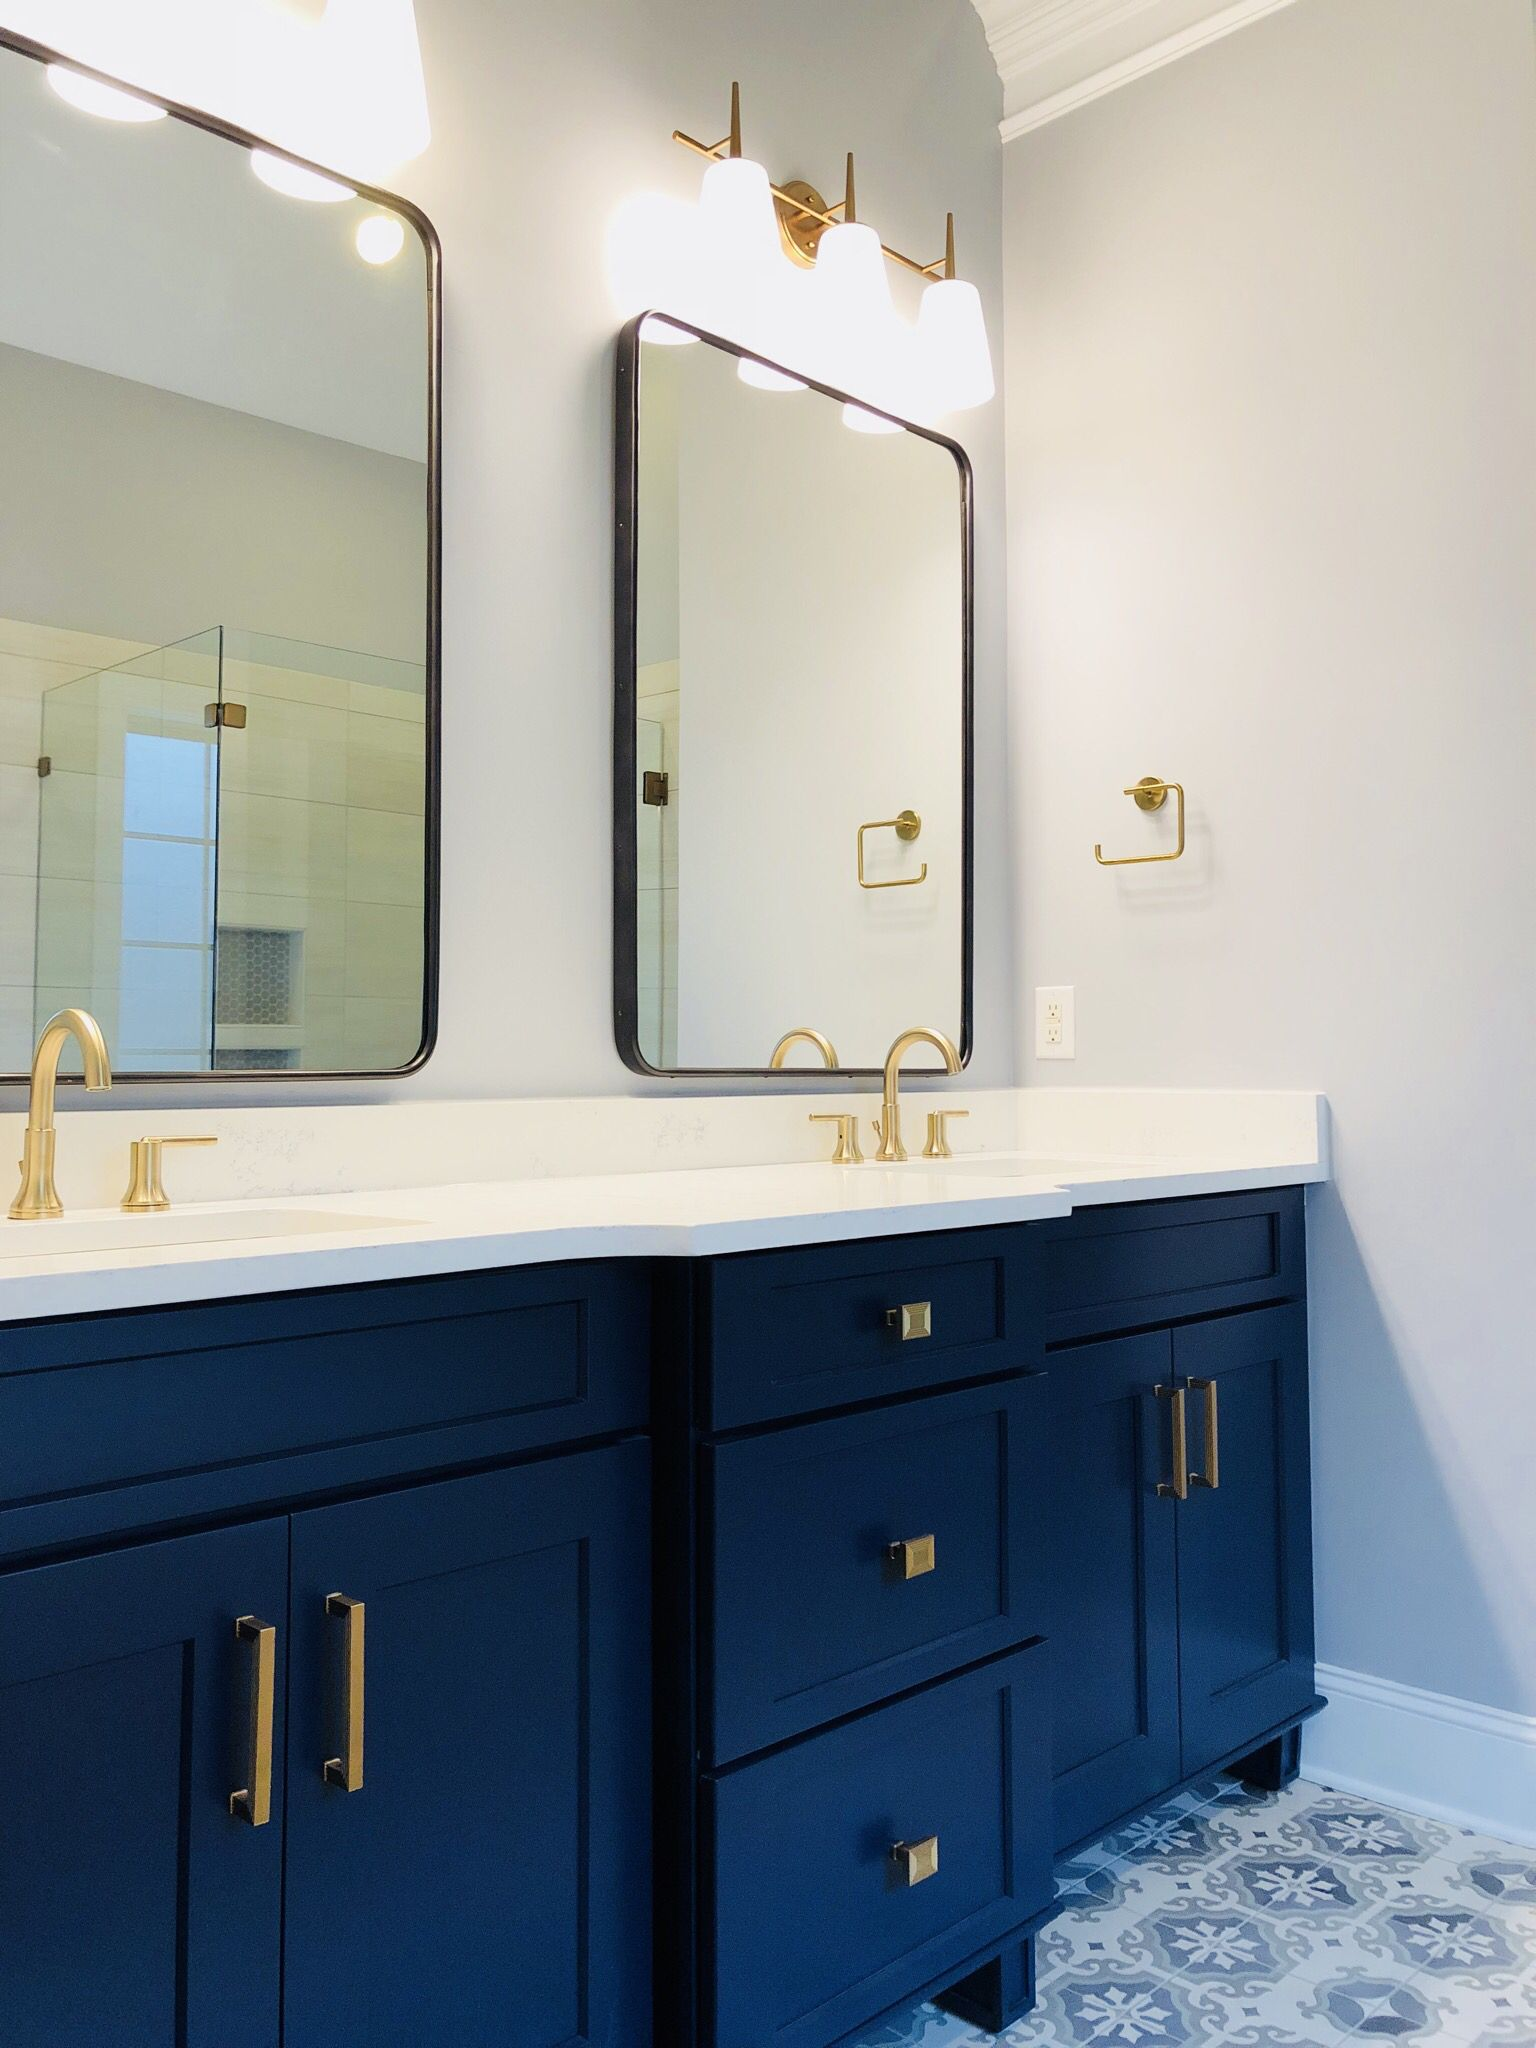 Champagne Bronze Fixtures Deep Navy Blue Vanity Oil Rubbed Bronze Mirrors And Light Grey Wal Blue Bathroom Vanity Bronze Bathroom Light Fixtures Blue Vanity